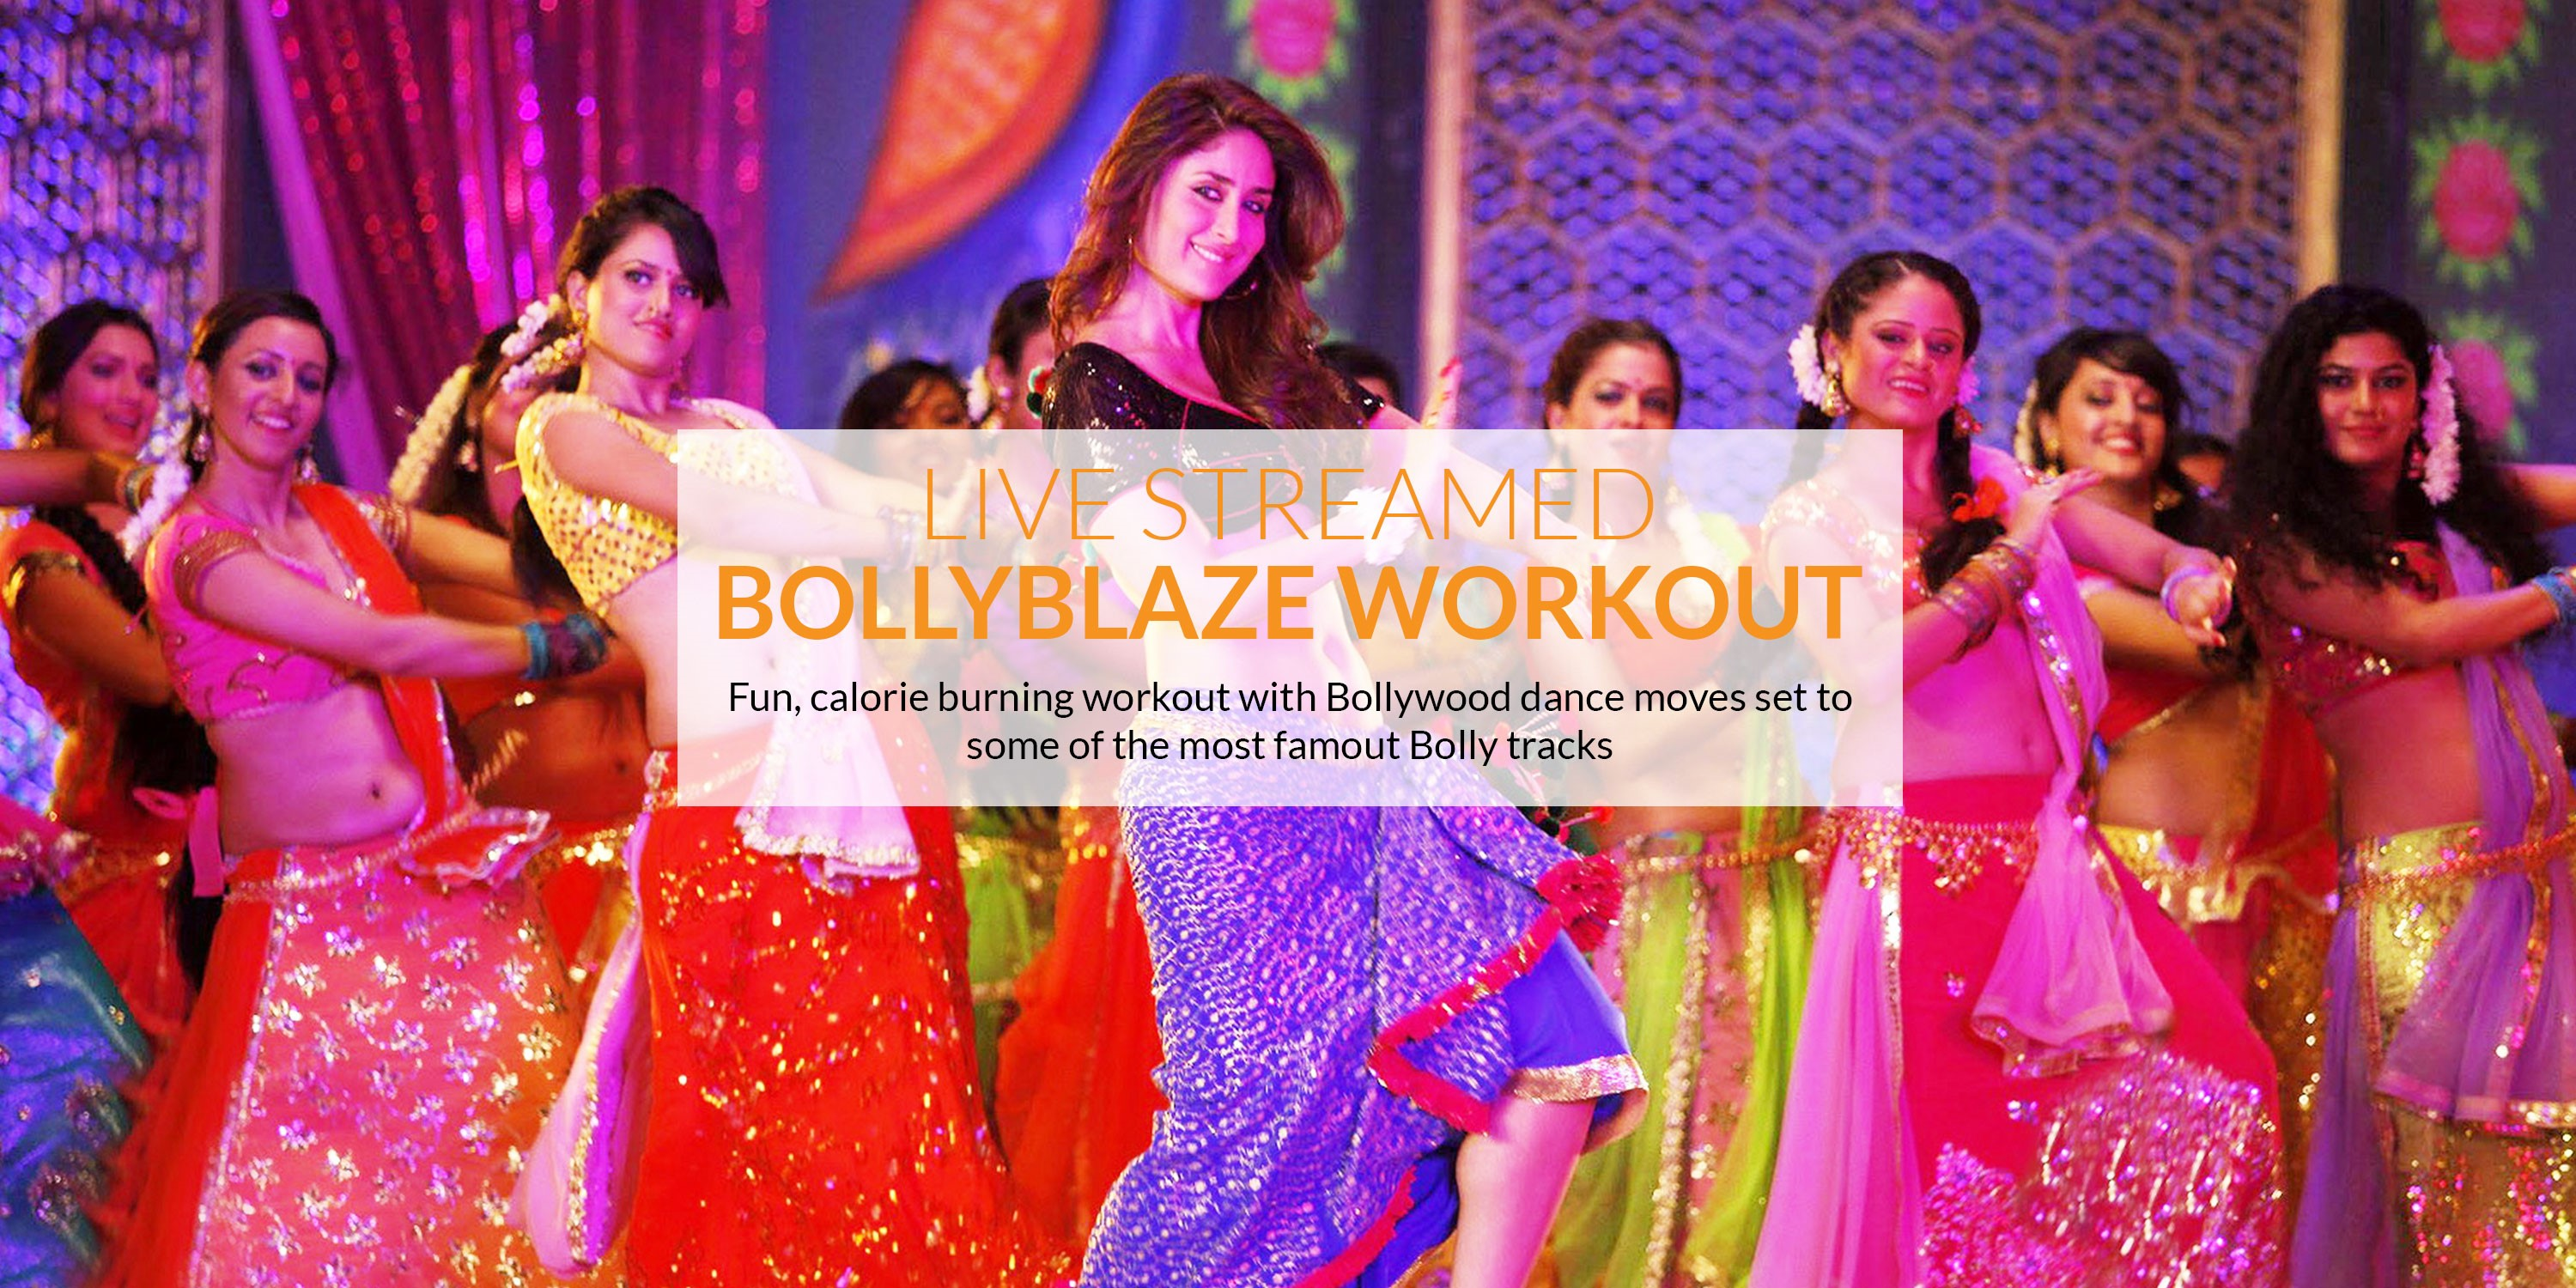 The best BollyBlaze workout live-streamed